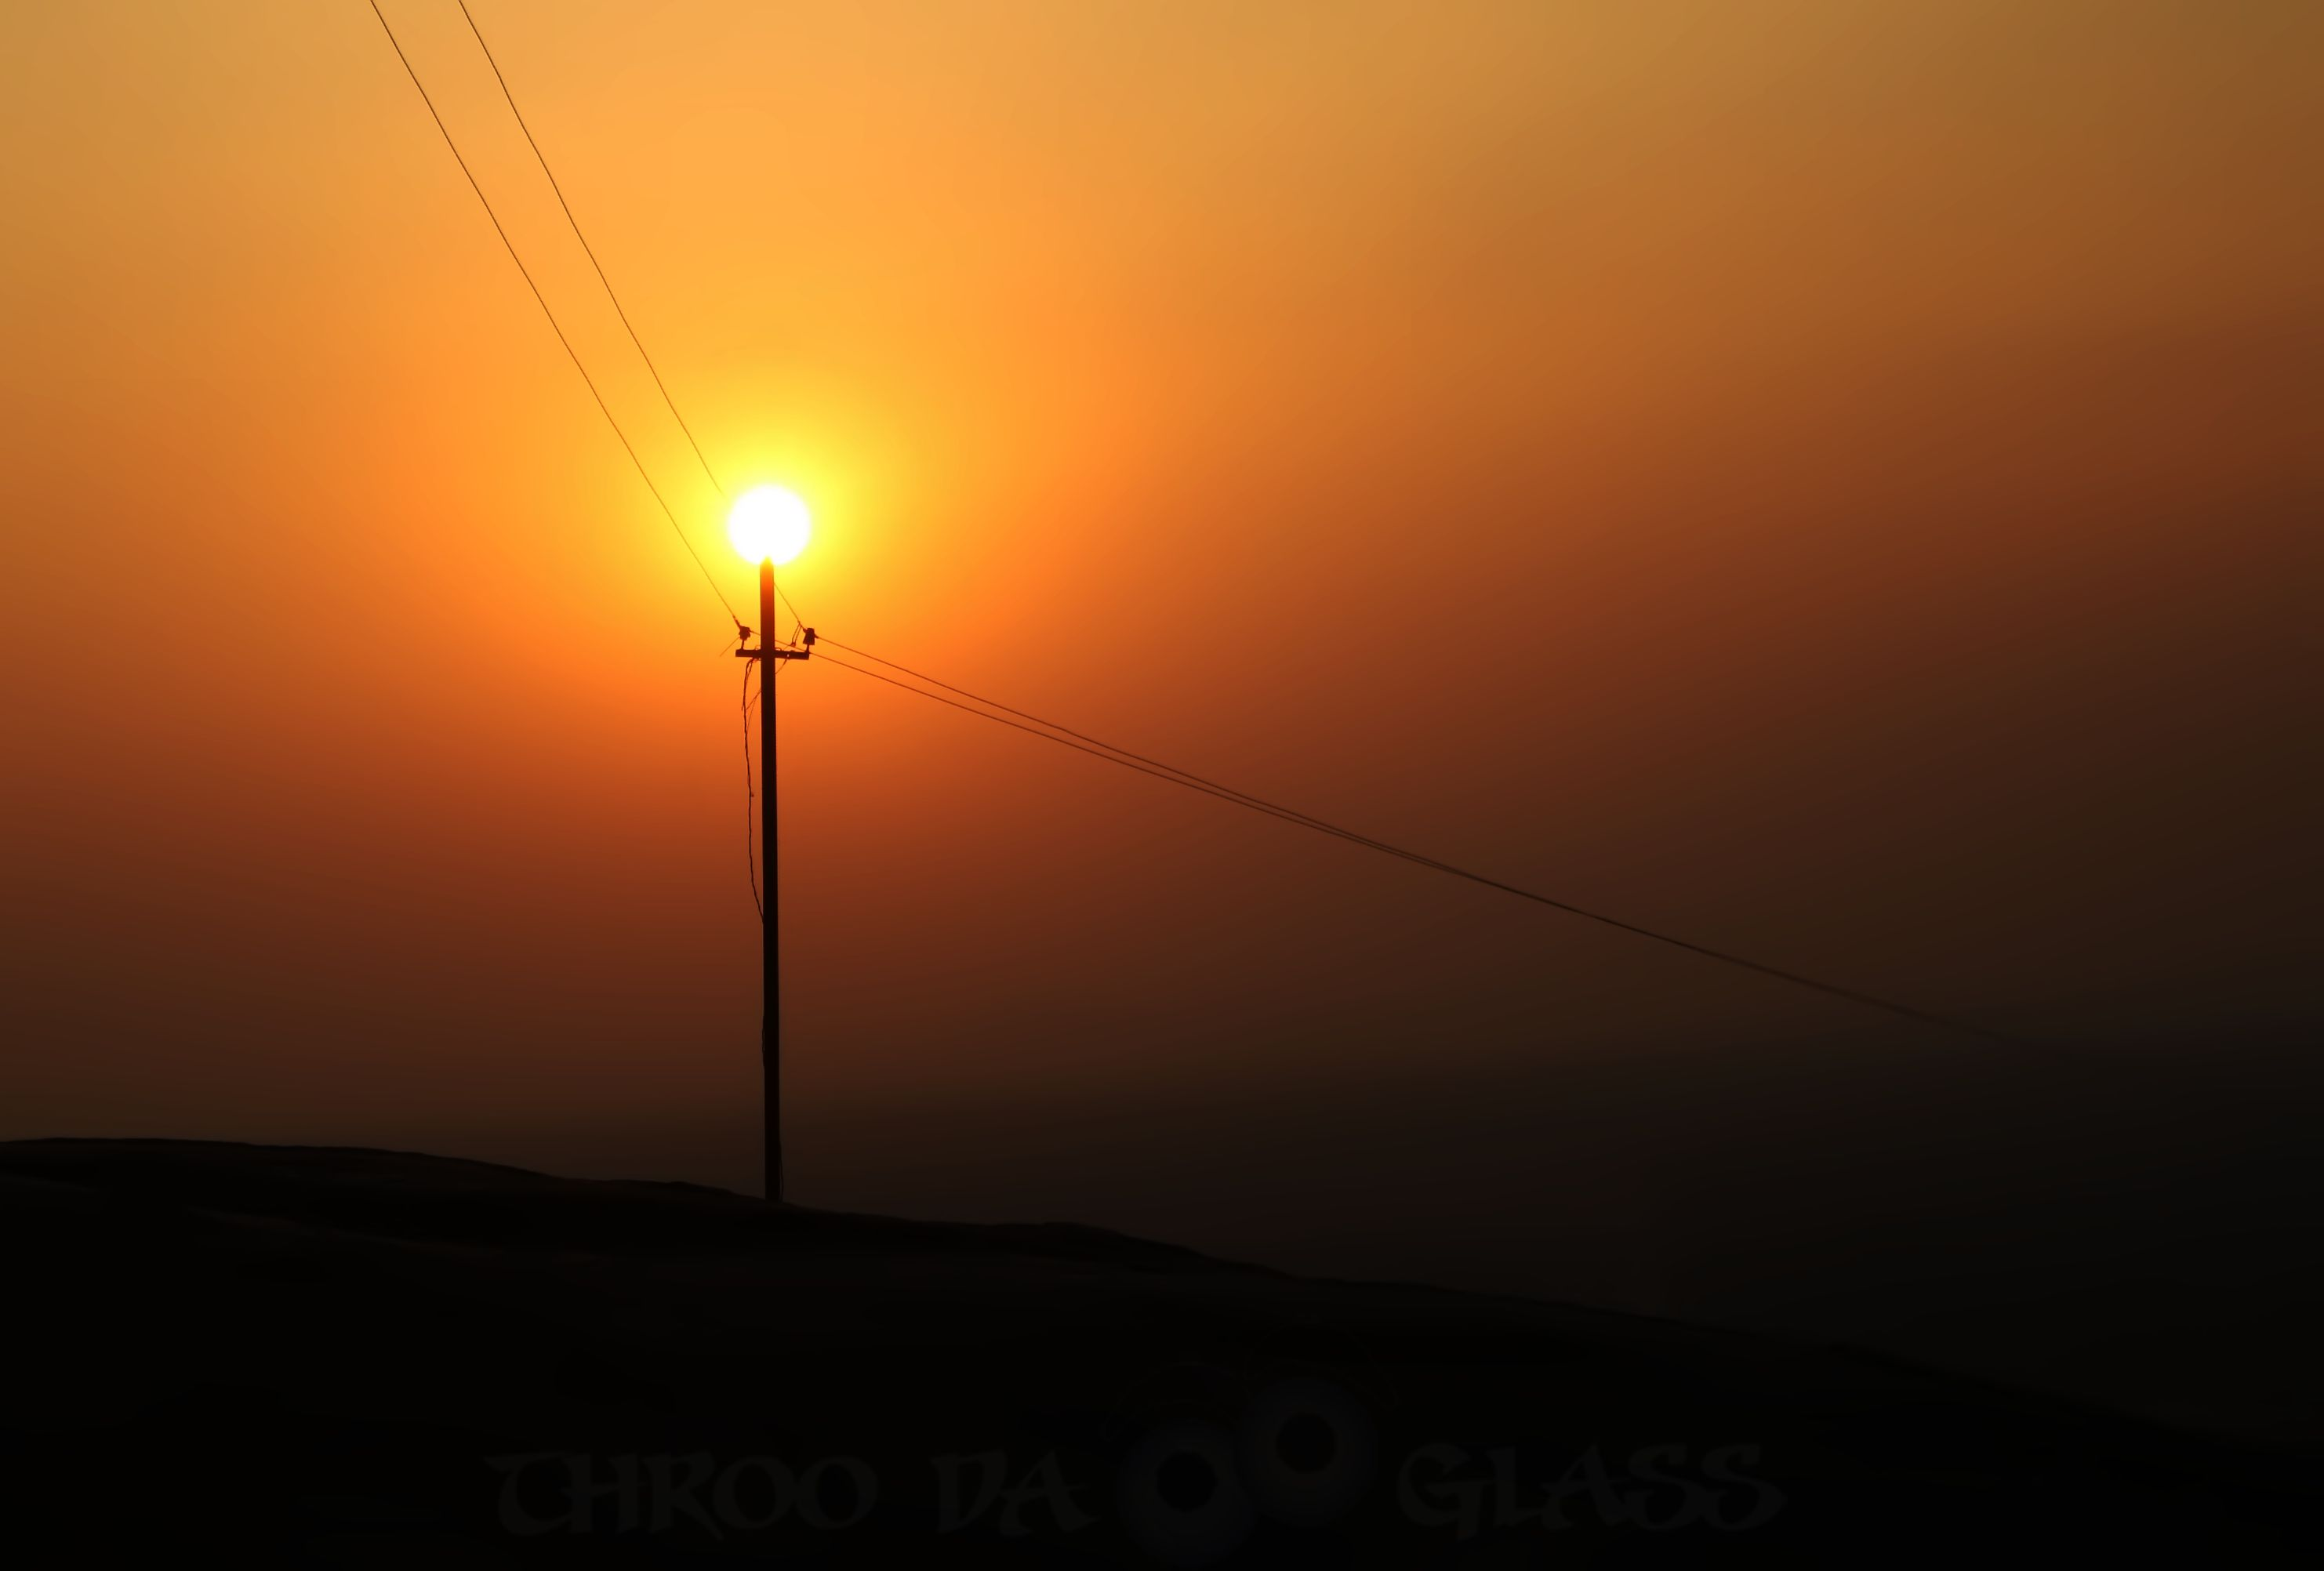 suset,shravanabelogola,bangalore blog,throo da looking glass, pravin, sunset,swf,skywatch,evening,sun,friday